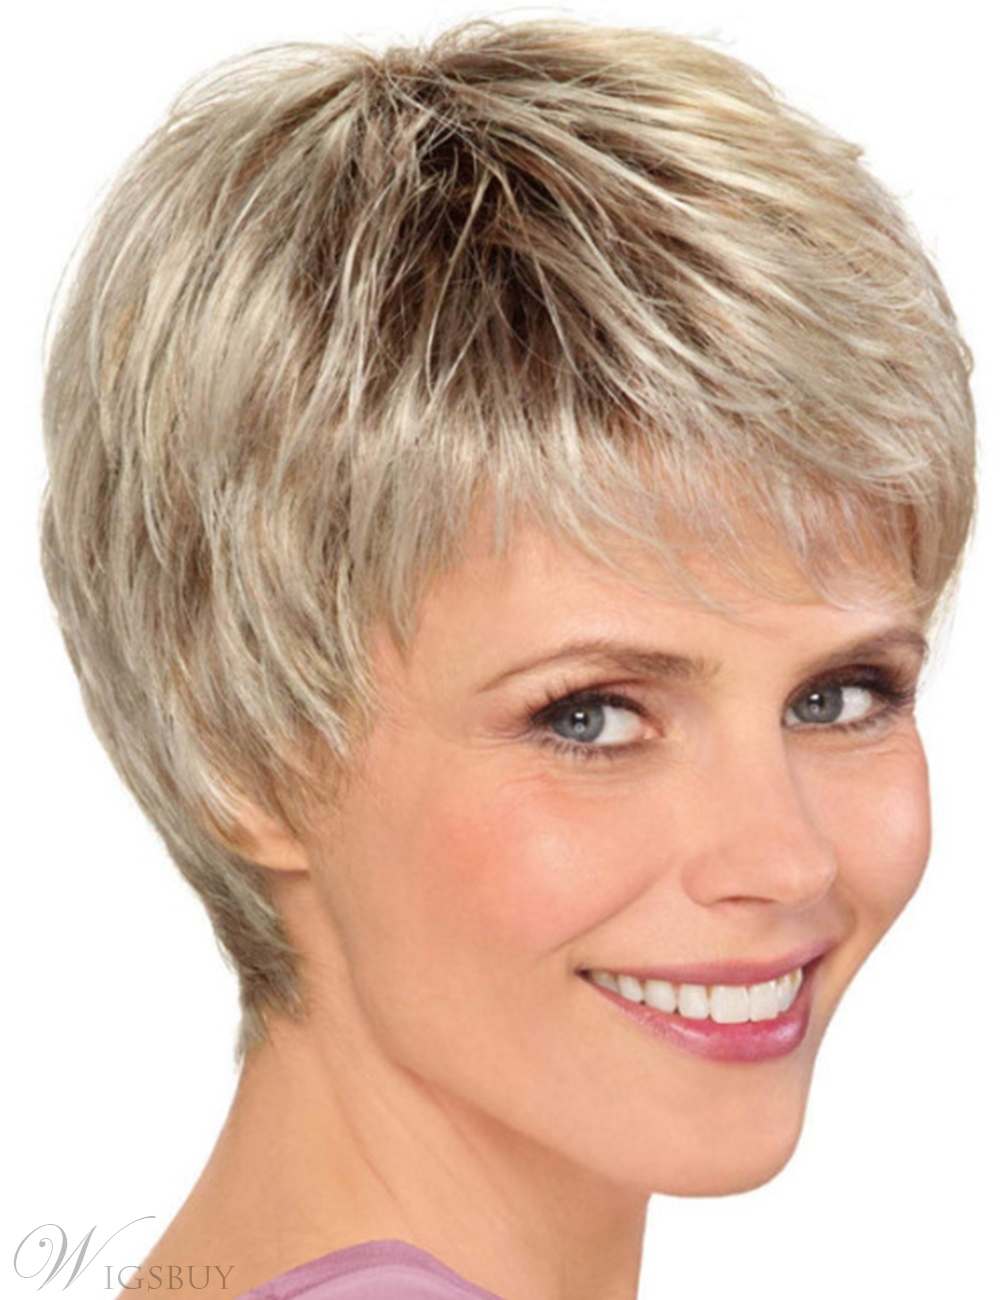 Short Choppy Layered Synthetic Hair Women Capless Wigs 10Inches